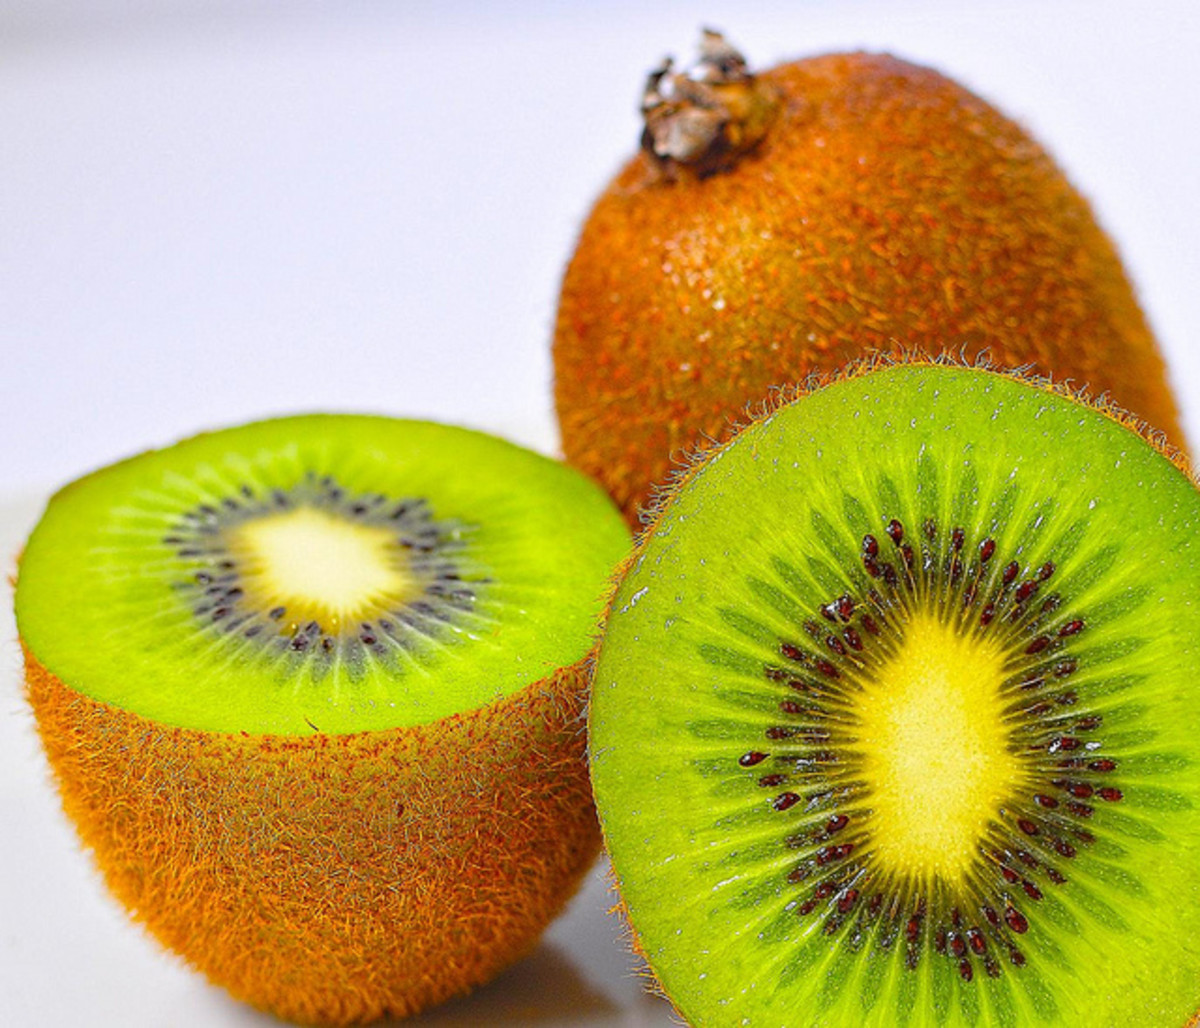 A medium kiwi is only 46 calories! Pair with a low calorie pita for a filling lunch.